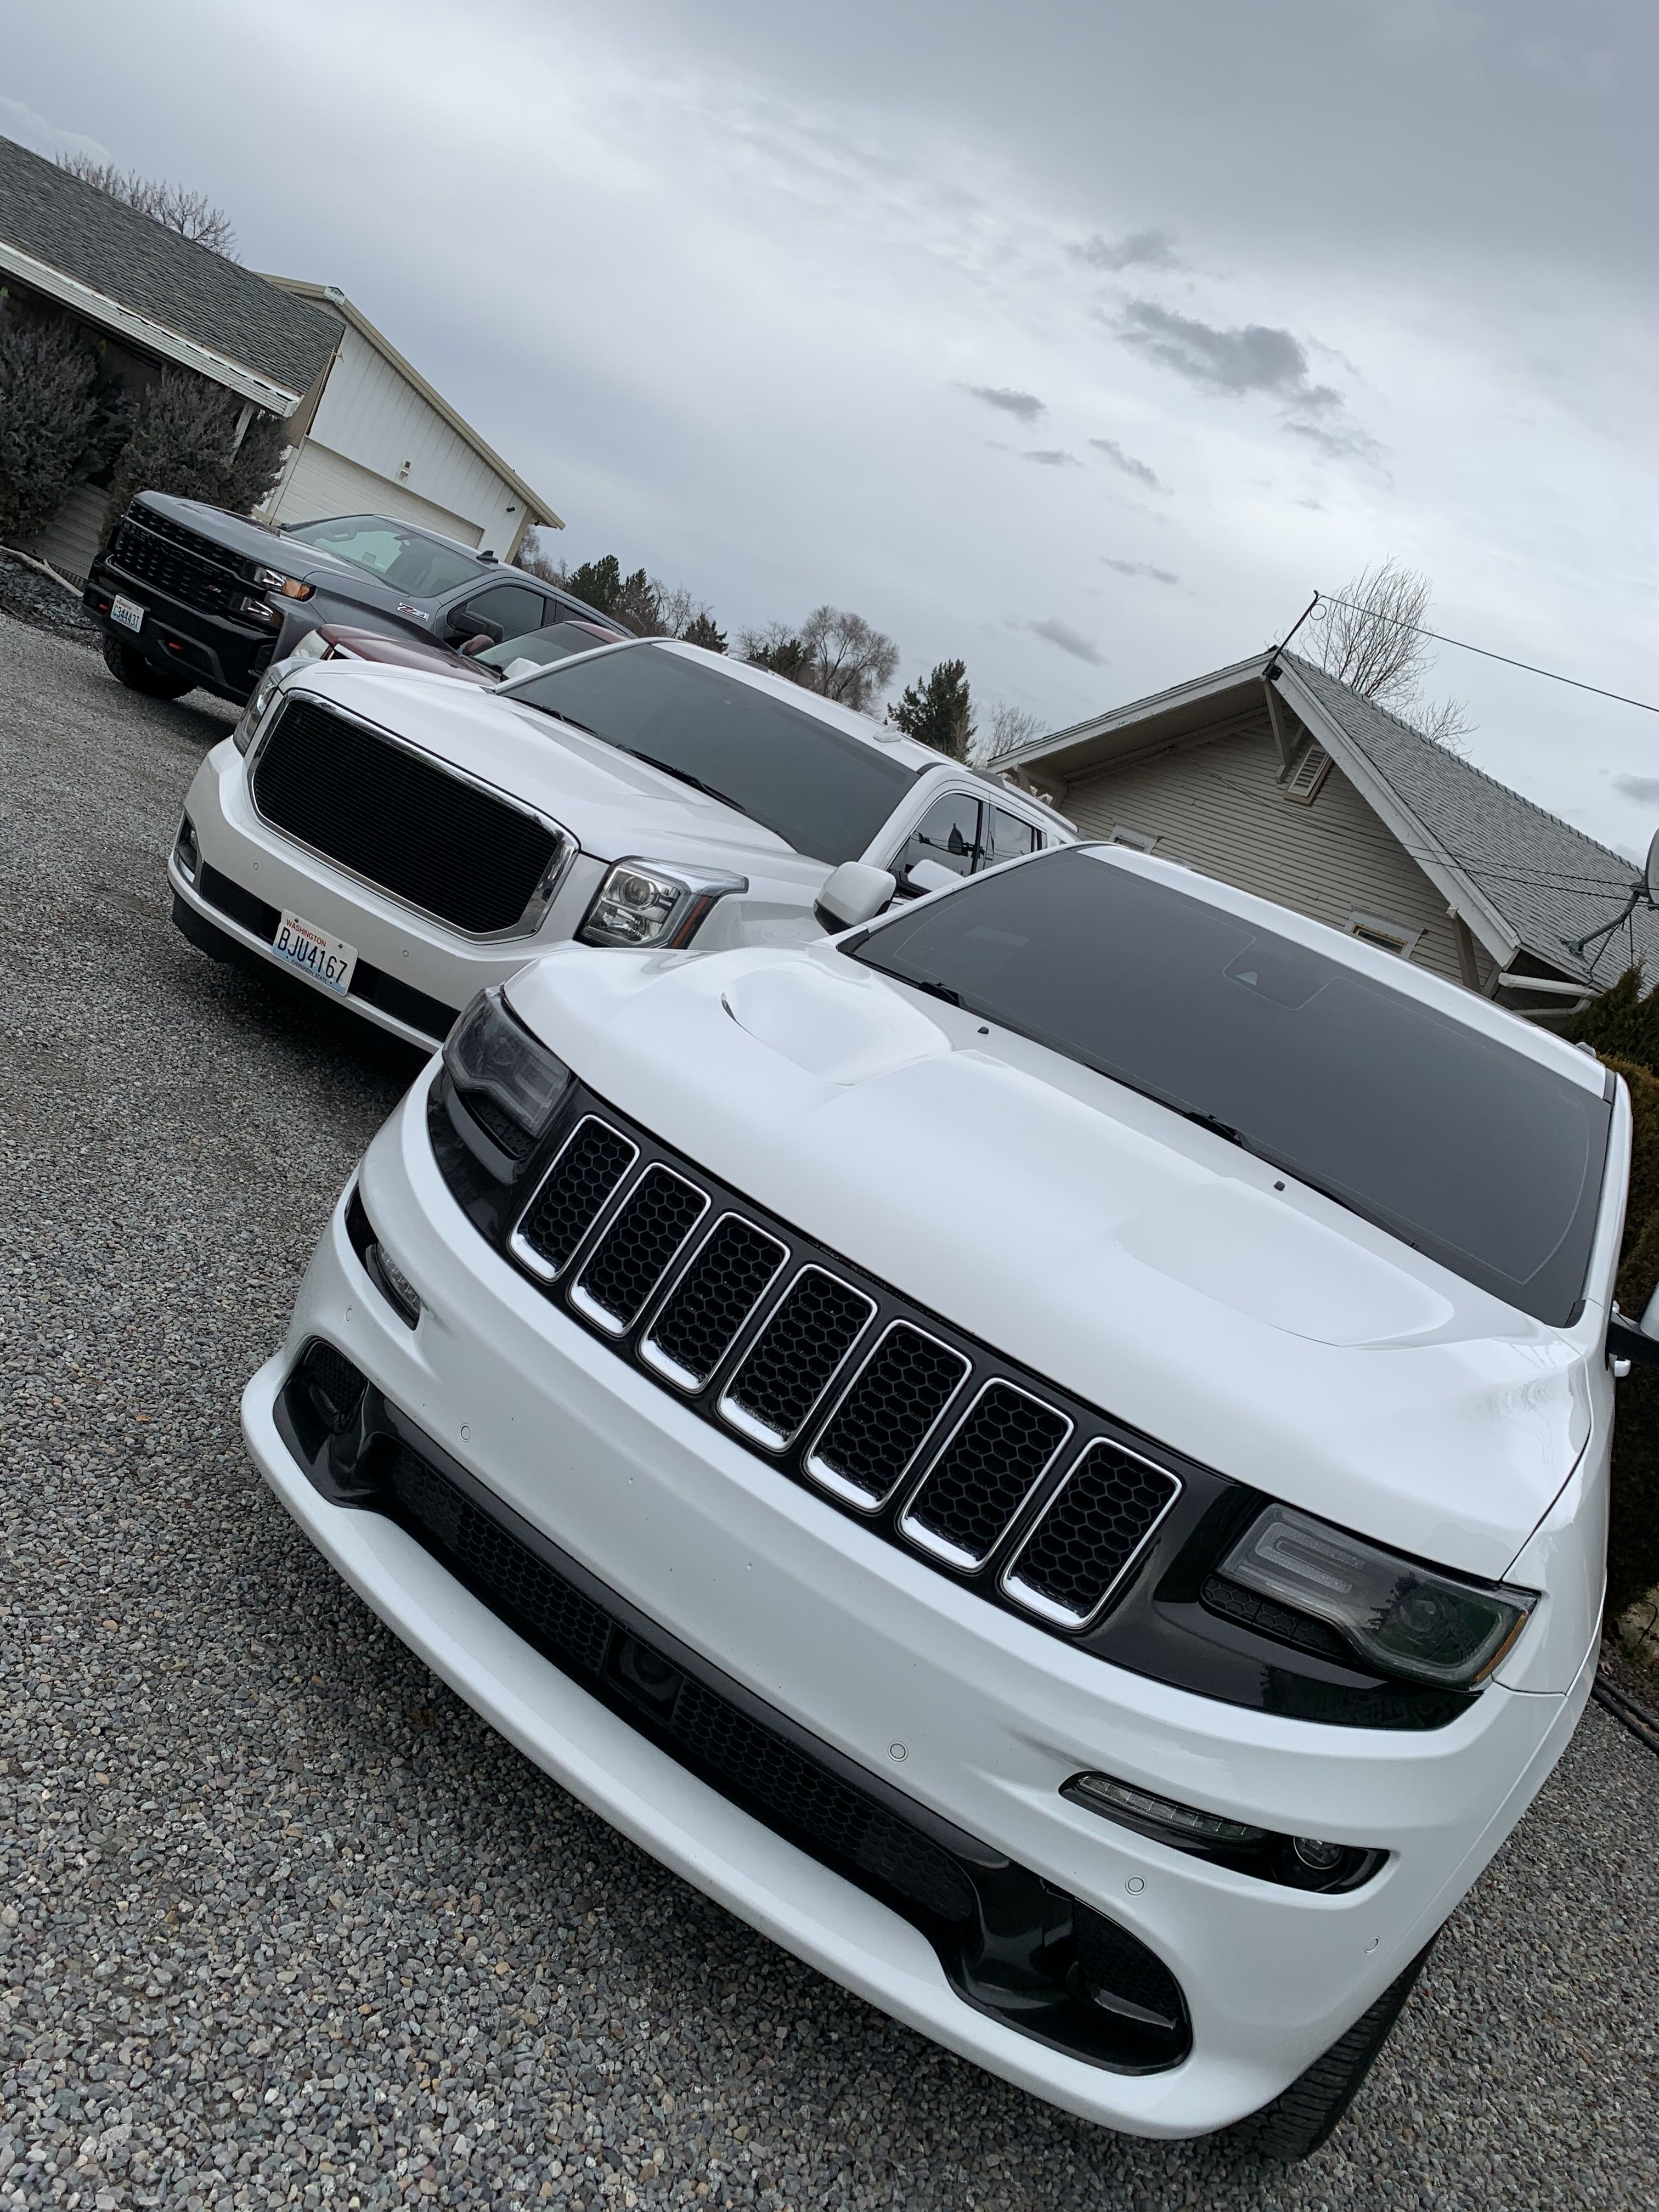 All these suvs here getting their full front windshield